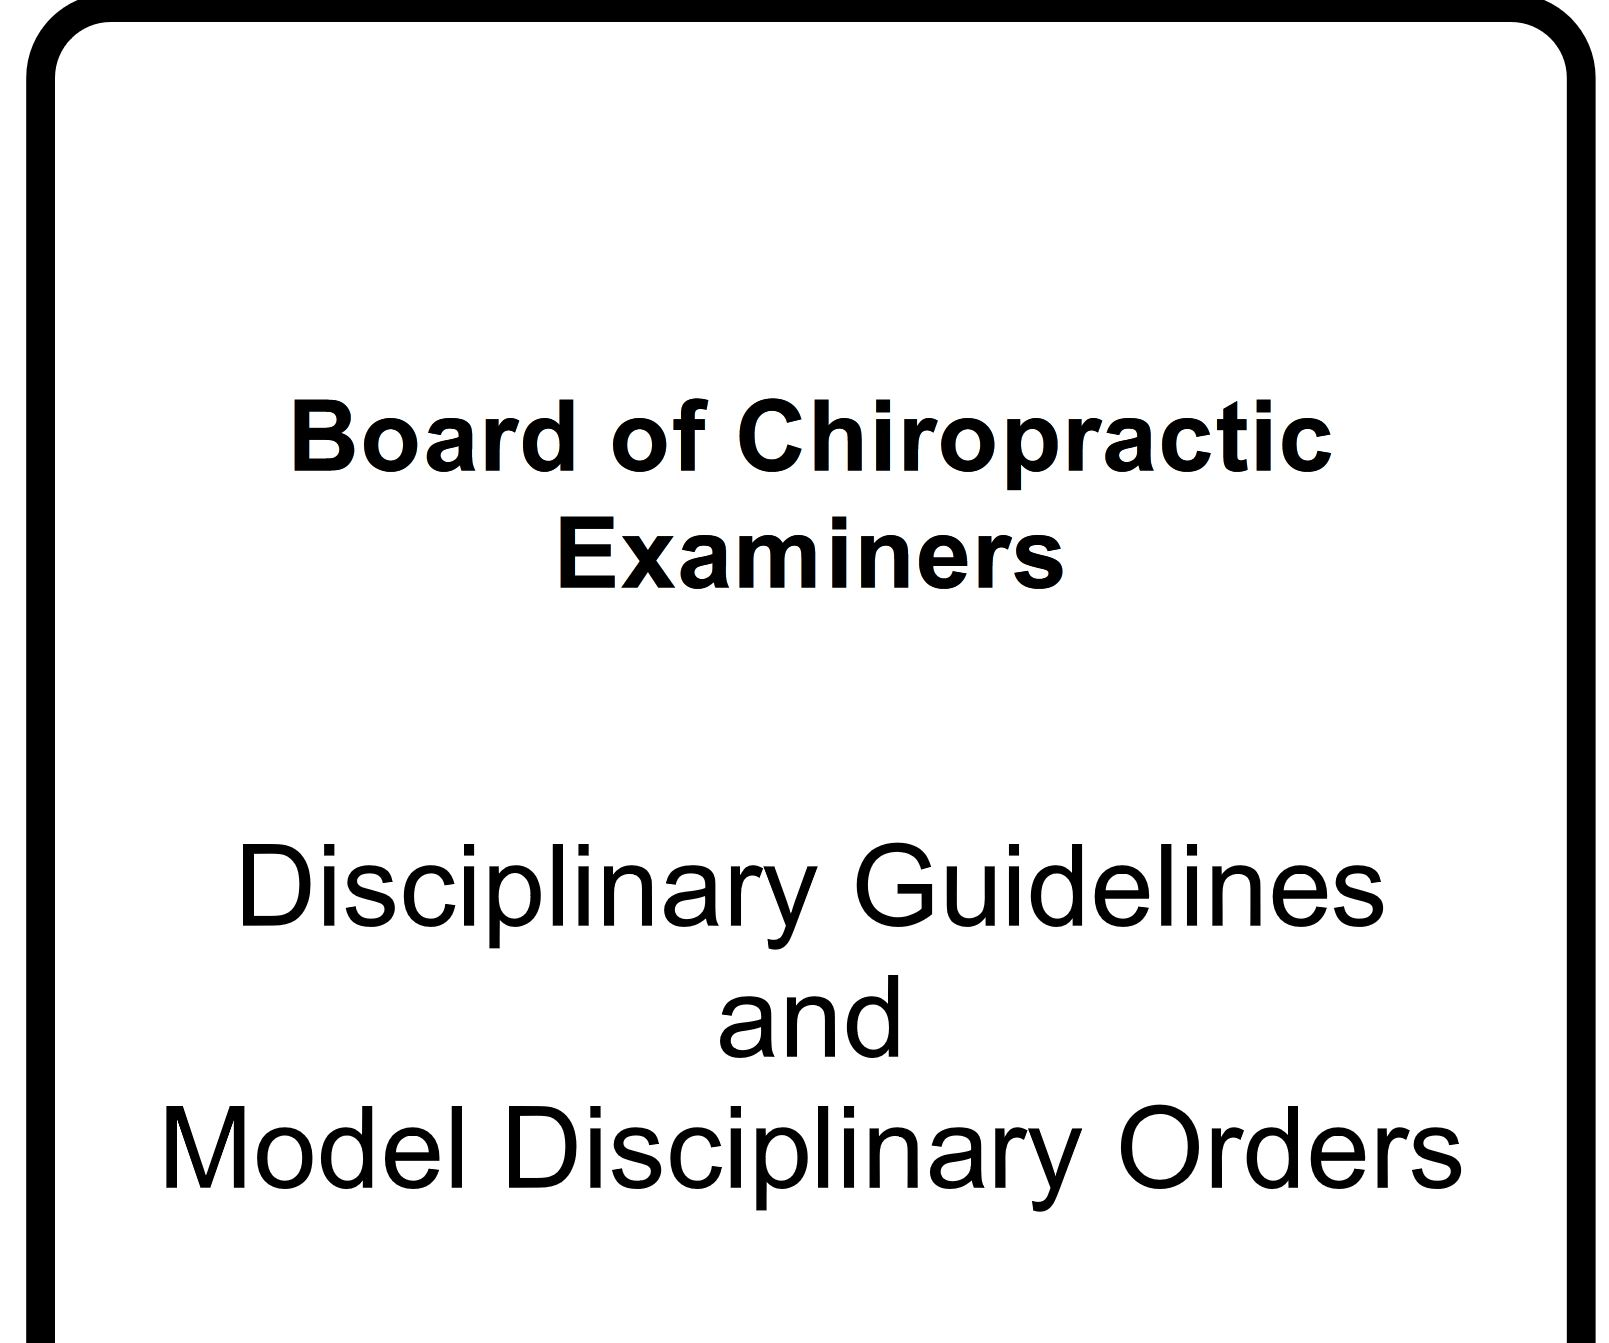 disciplinary guidelines for the board of chiropractic examiners complete volume